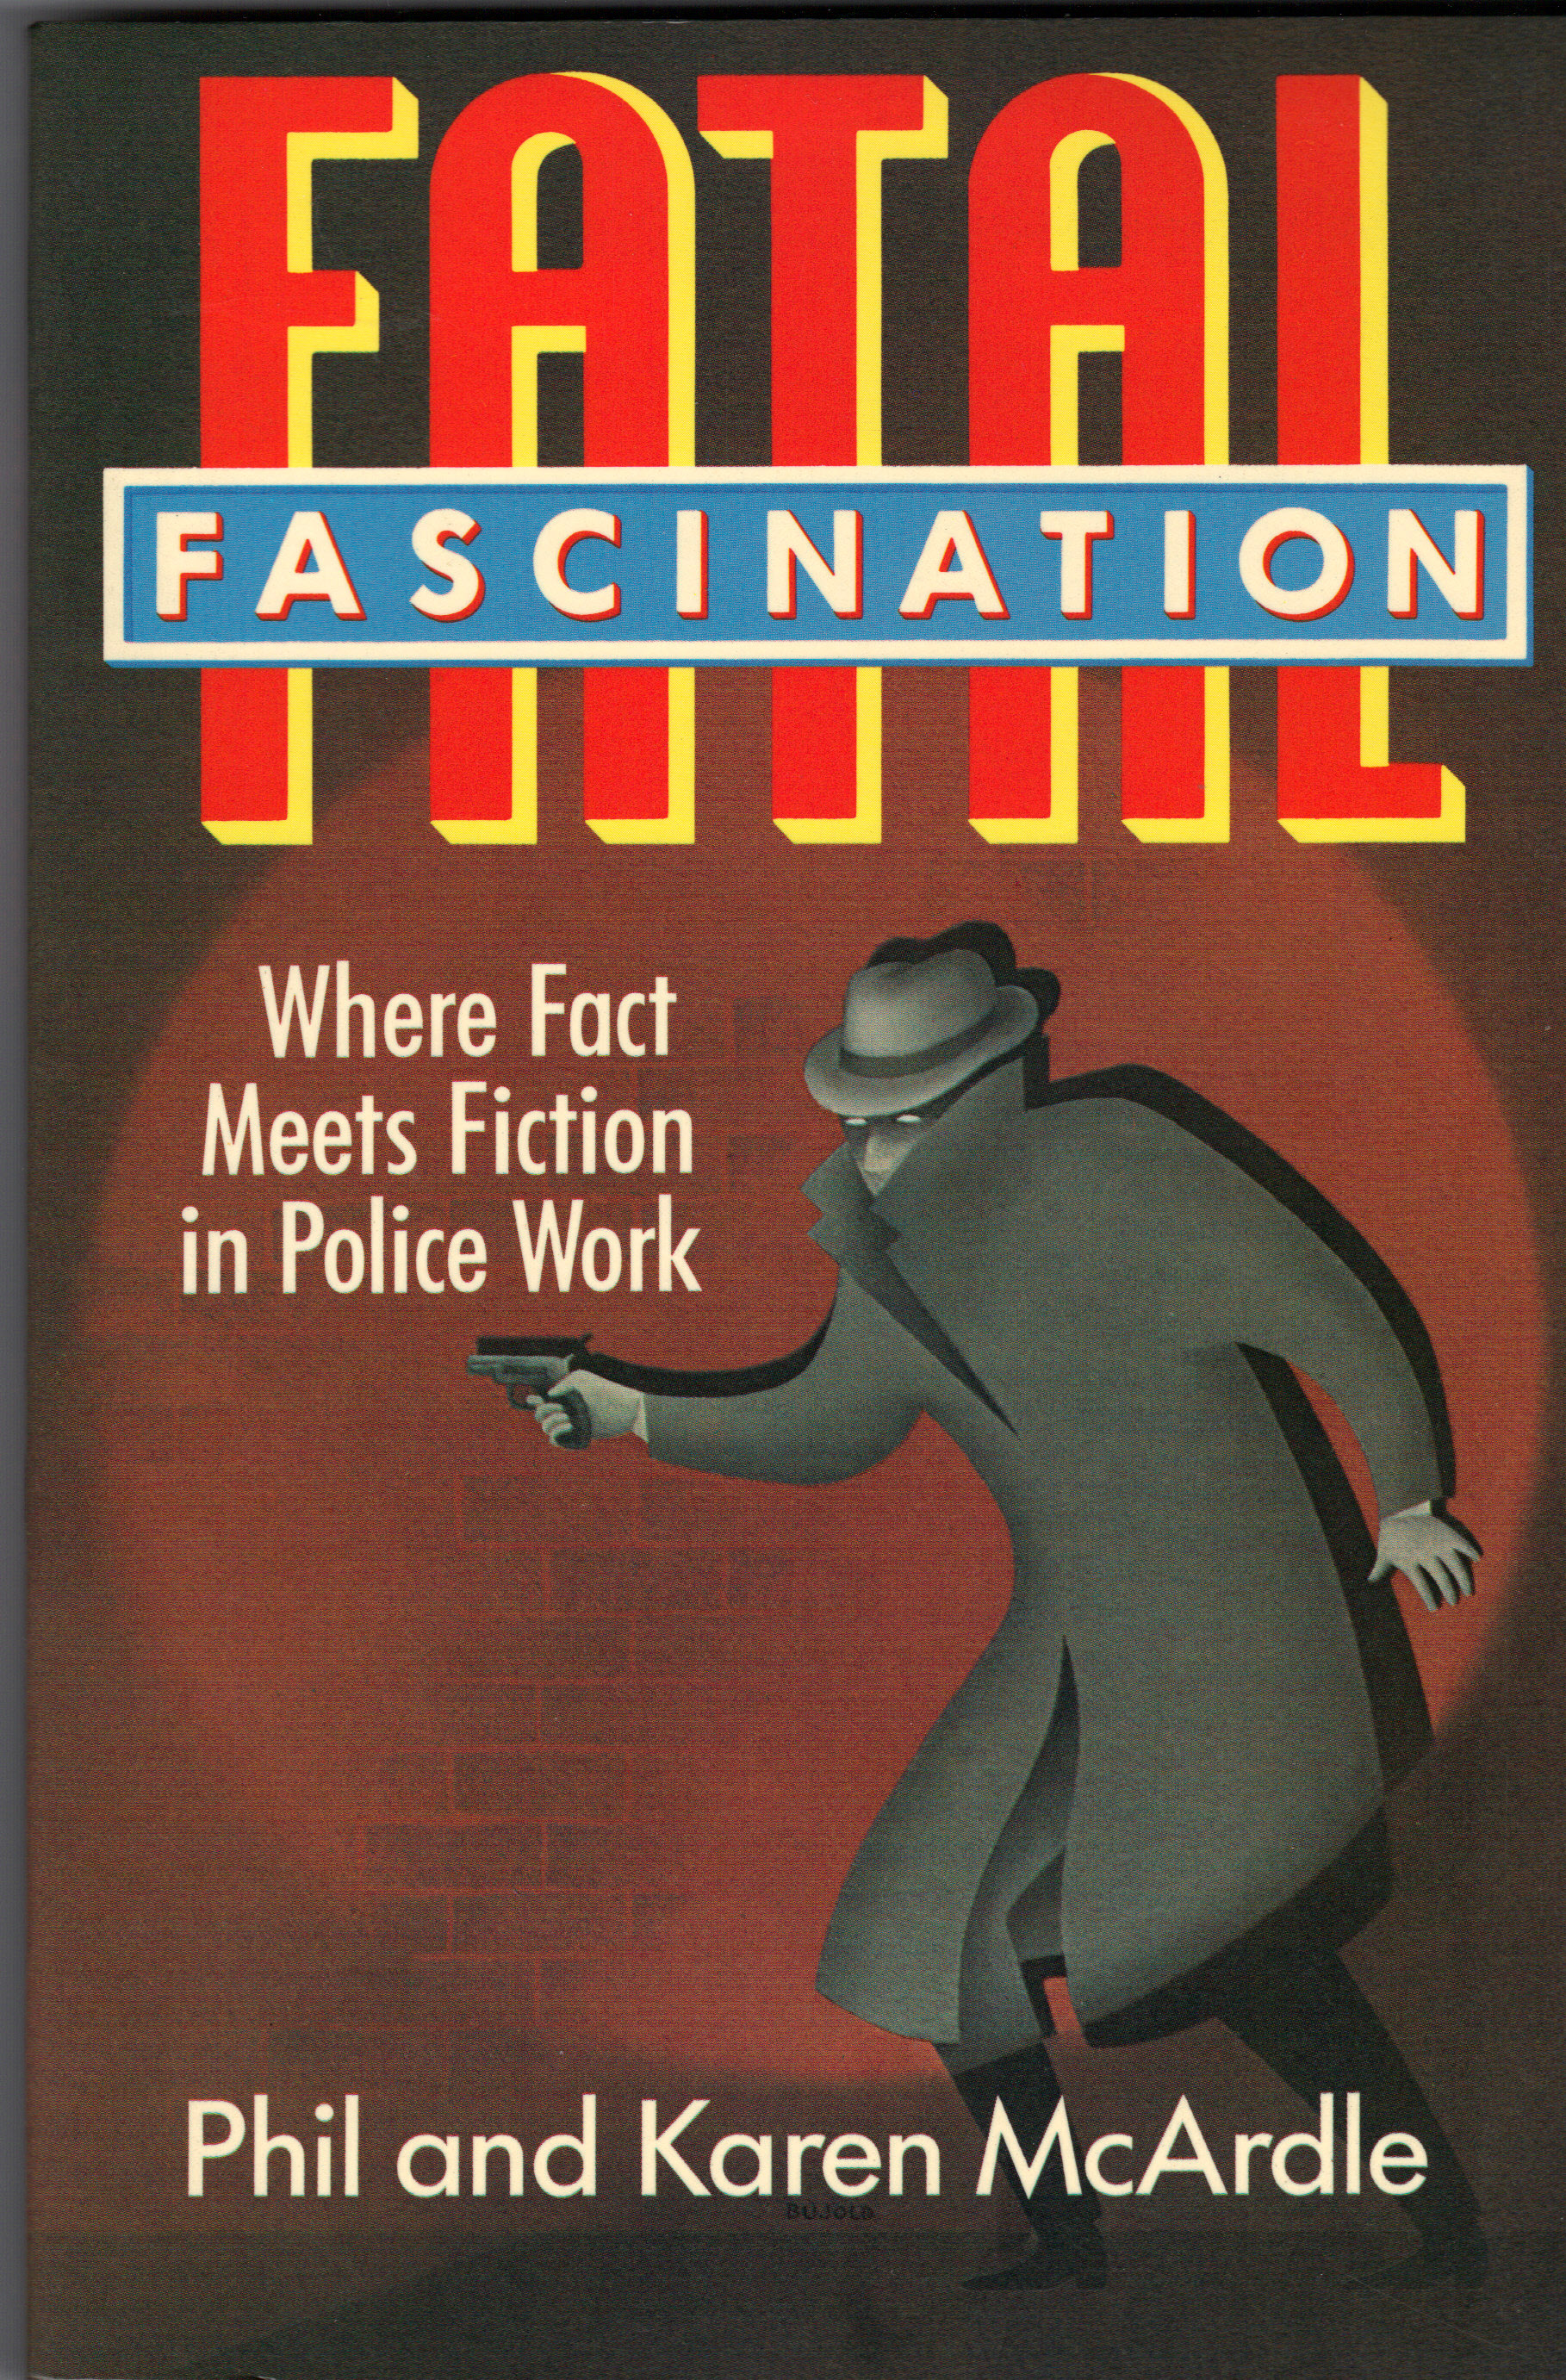 Image for FATAL FASCINATION ~Where Fact Meets Fiction in Police Work